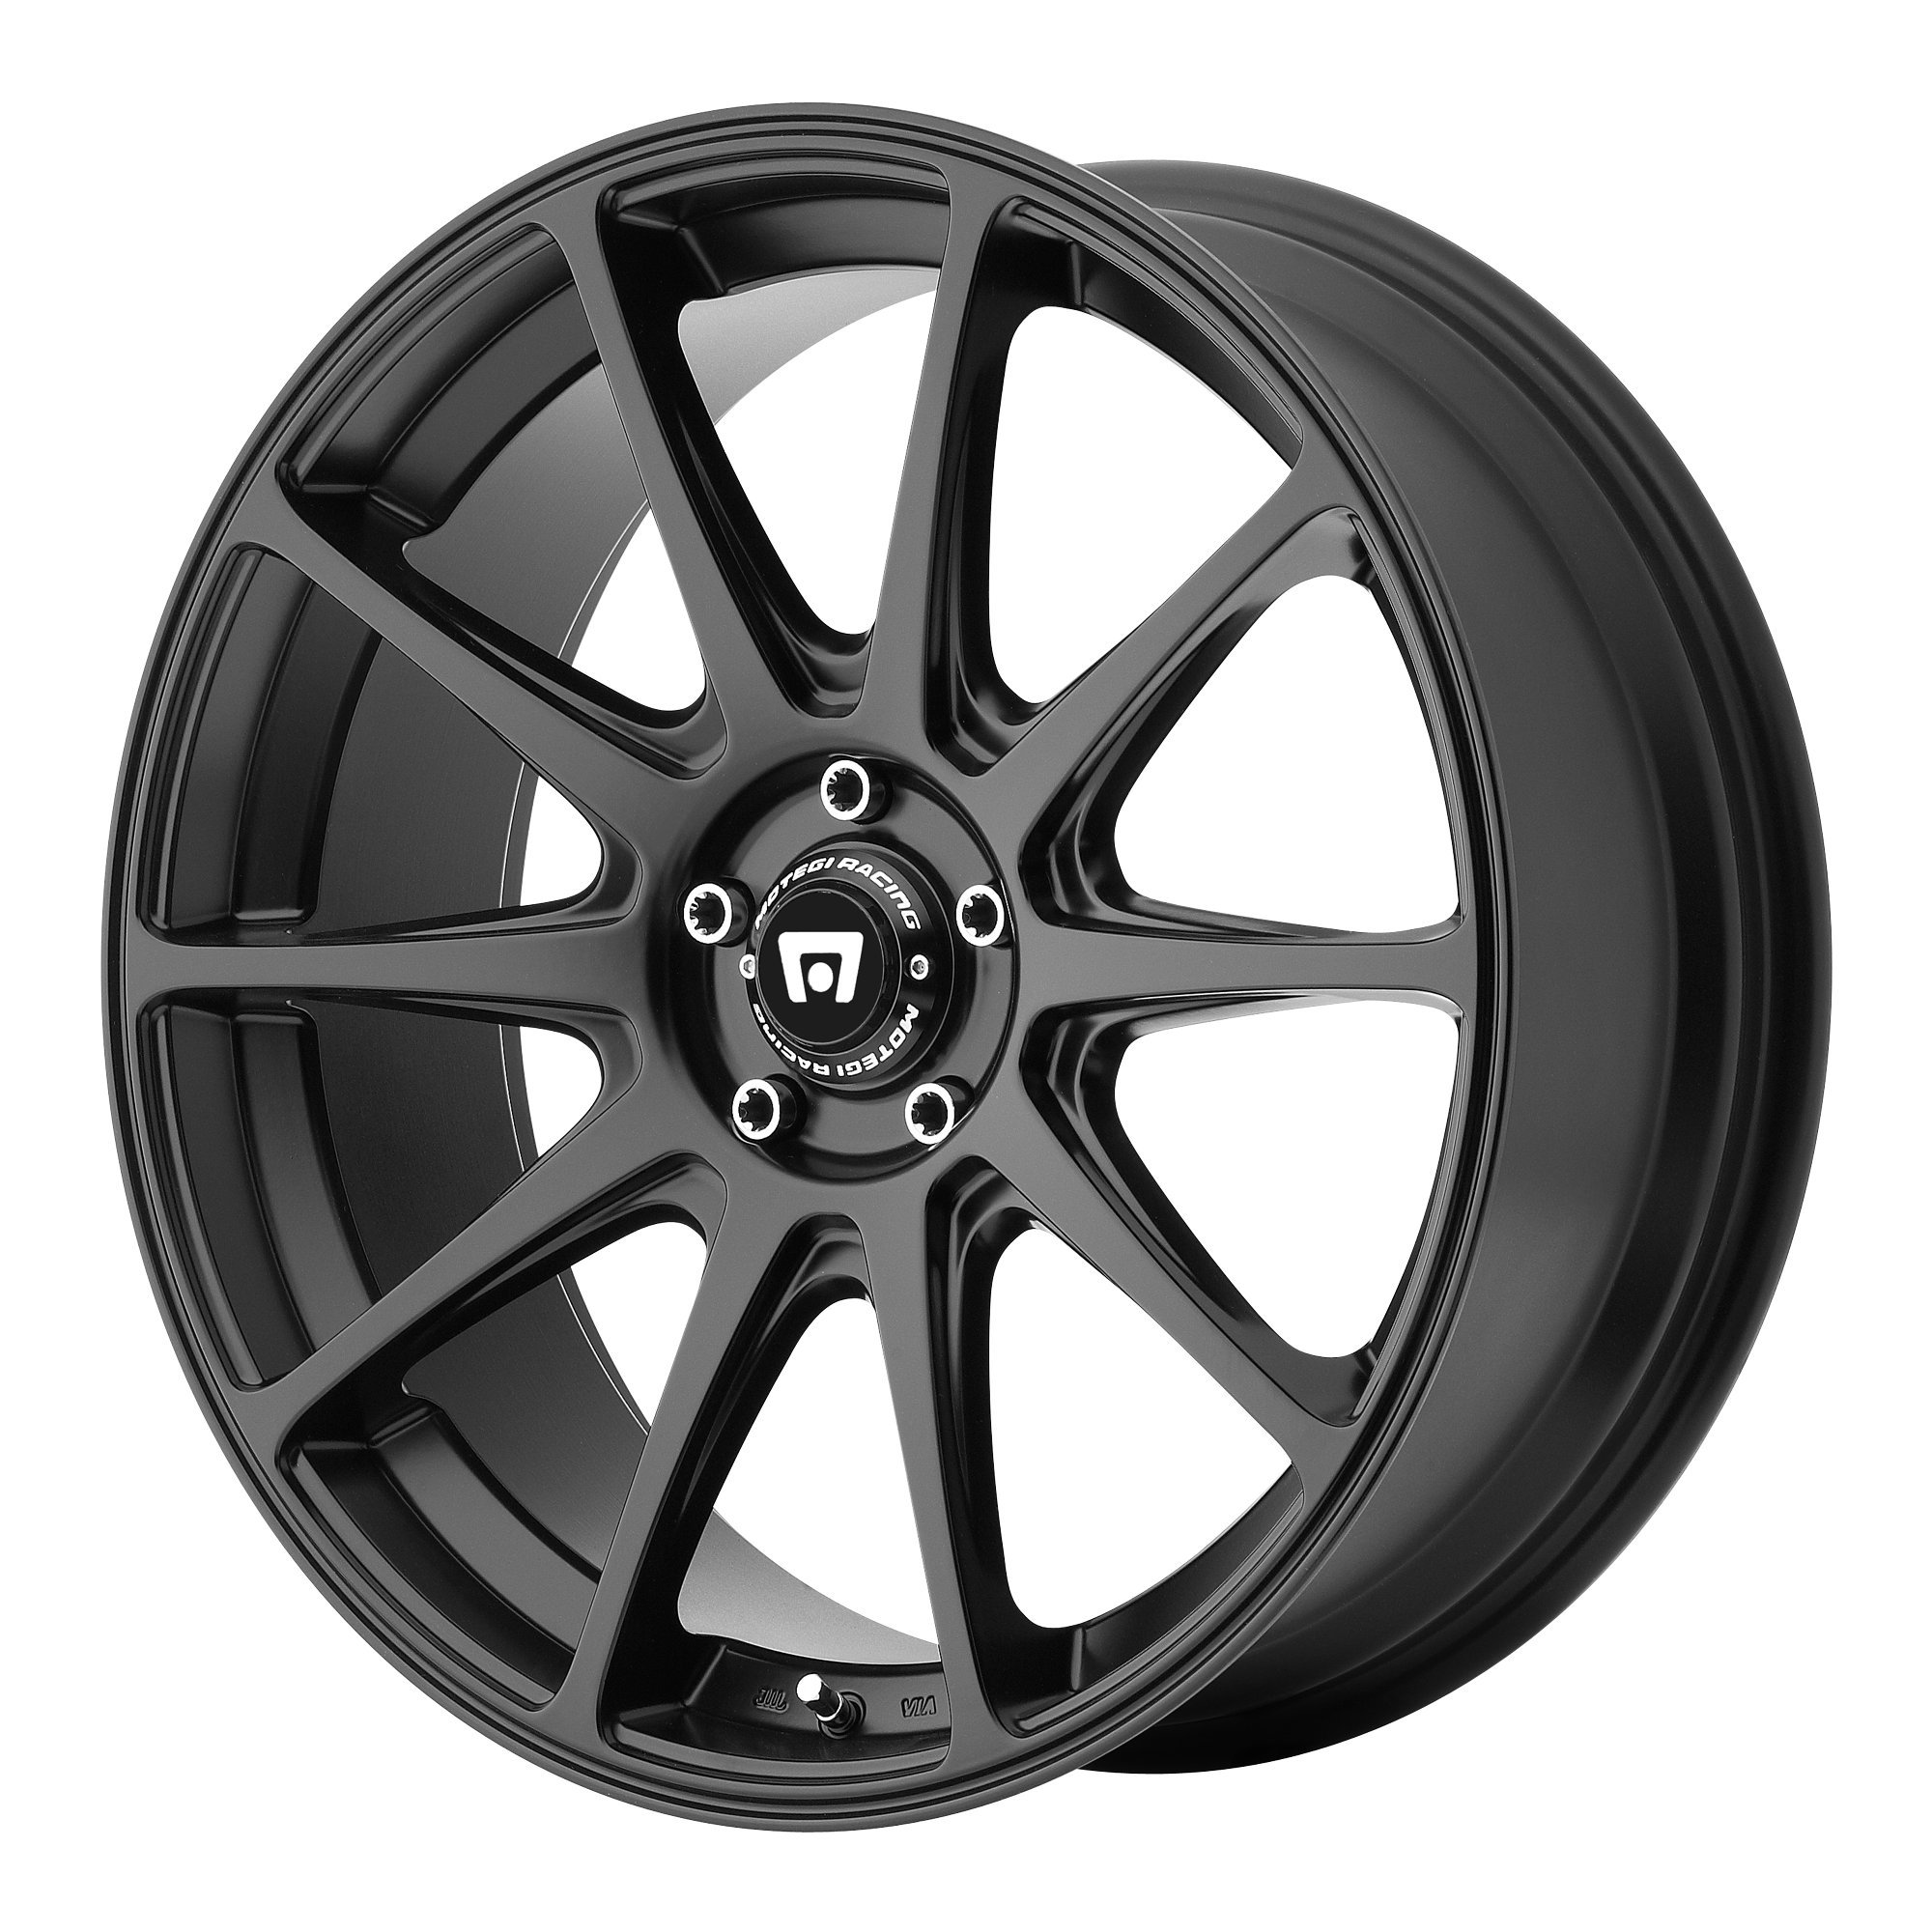 Motegi Racing MR127 Satin Black Wheel (20x8.5''/5x114.3mm, +25mm offset) by Motegi Racing (Image #1)